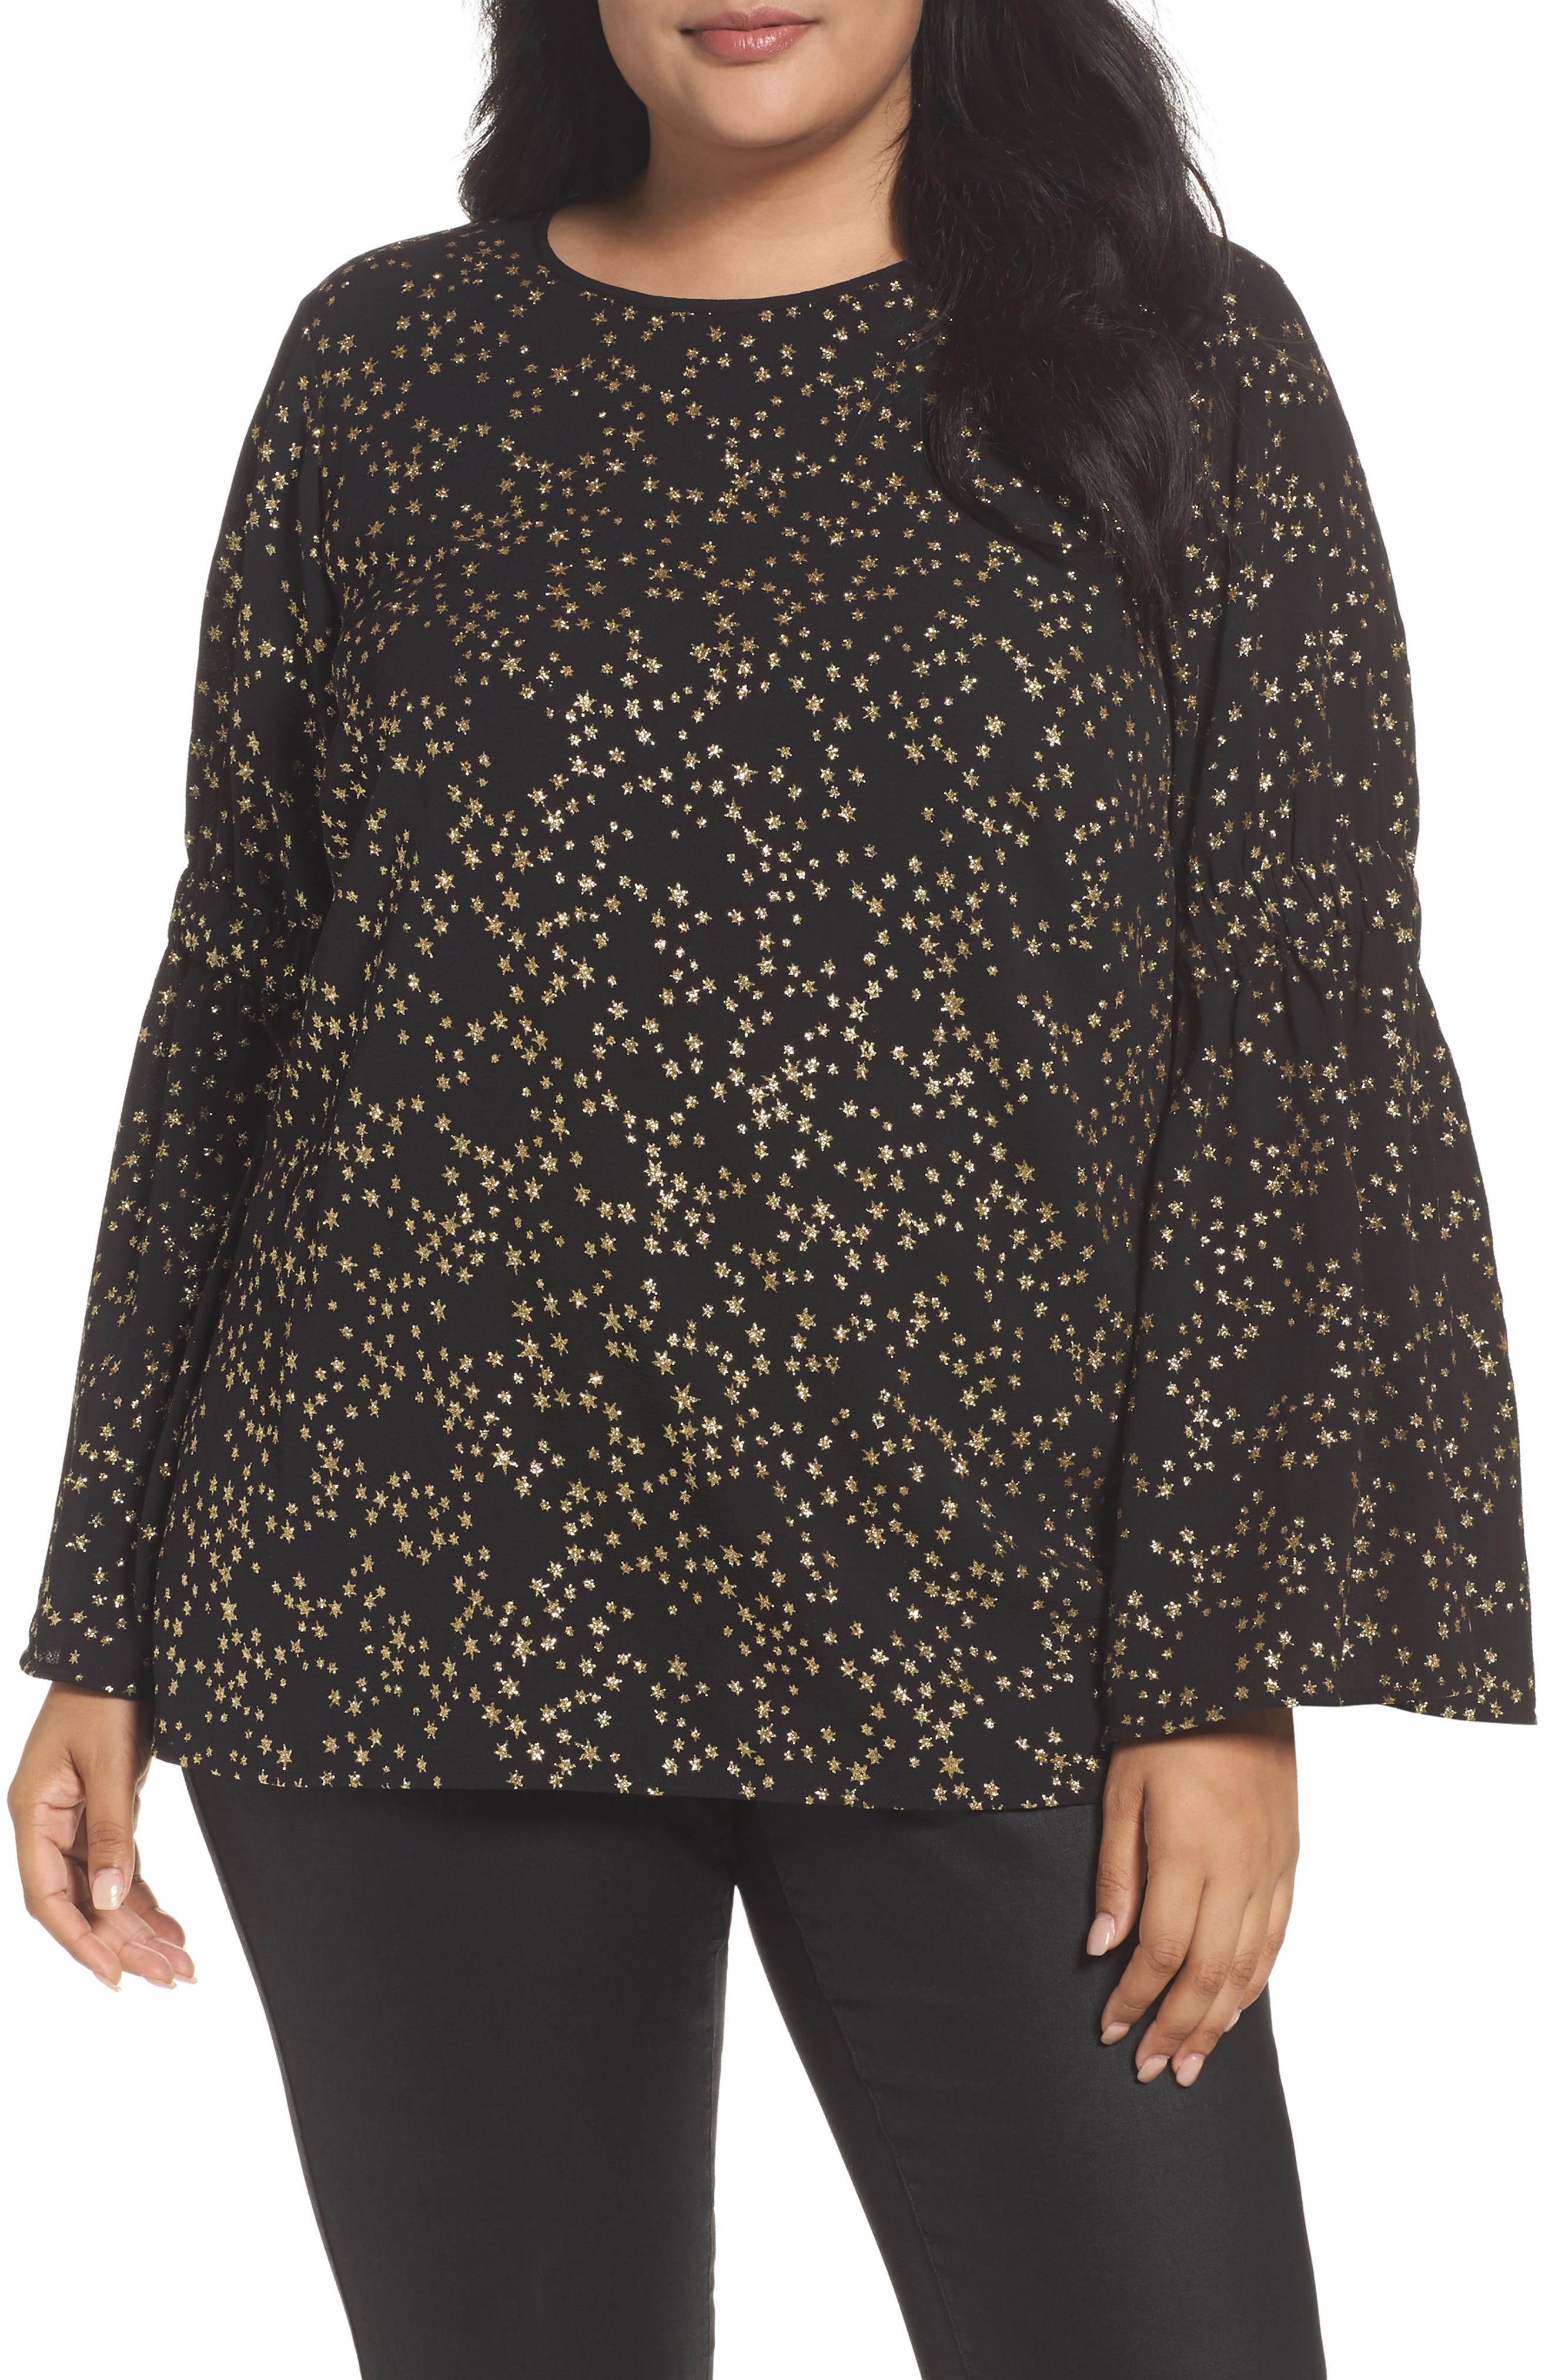 Main Image - MICHAEL Michael Kors Shooting Star Bell Sleeve Top (Plus Size)